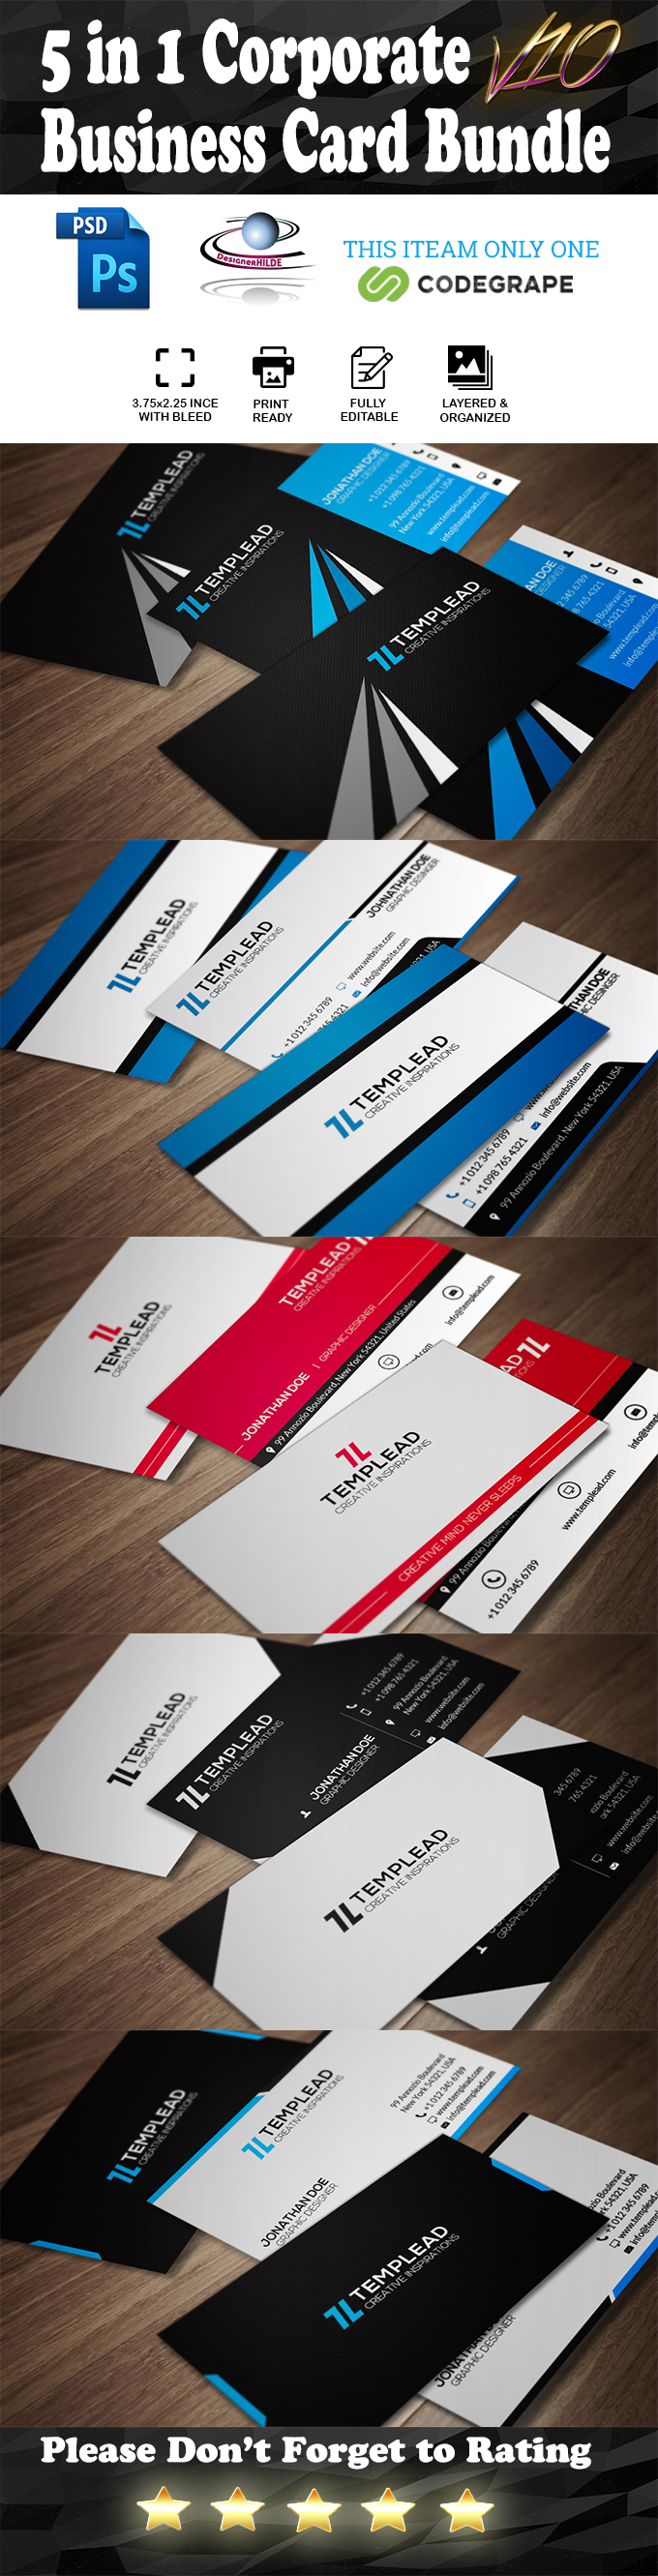 5 in 1 Corporate Business Card Bundle V.10